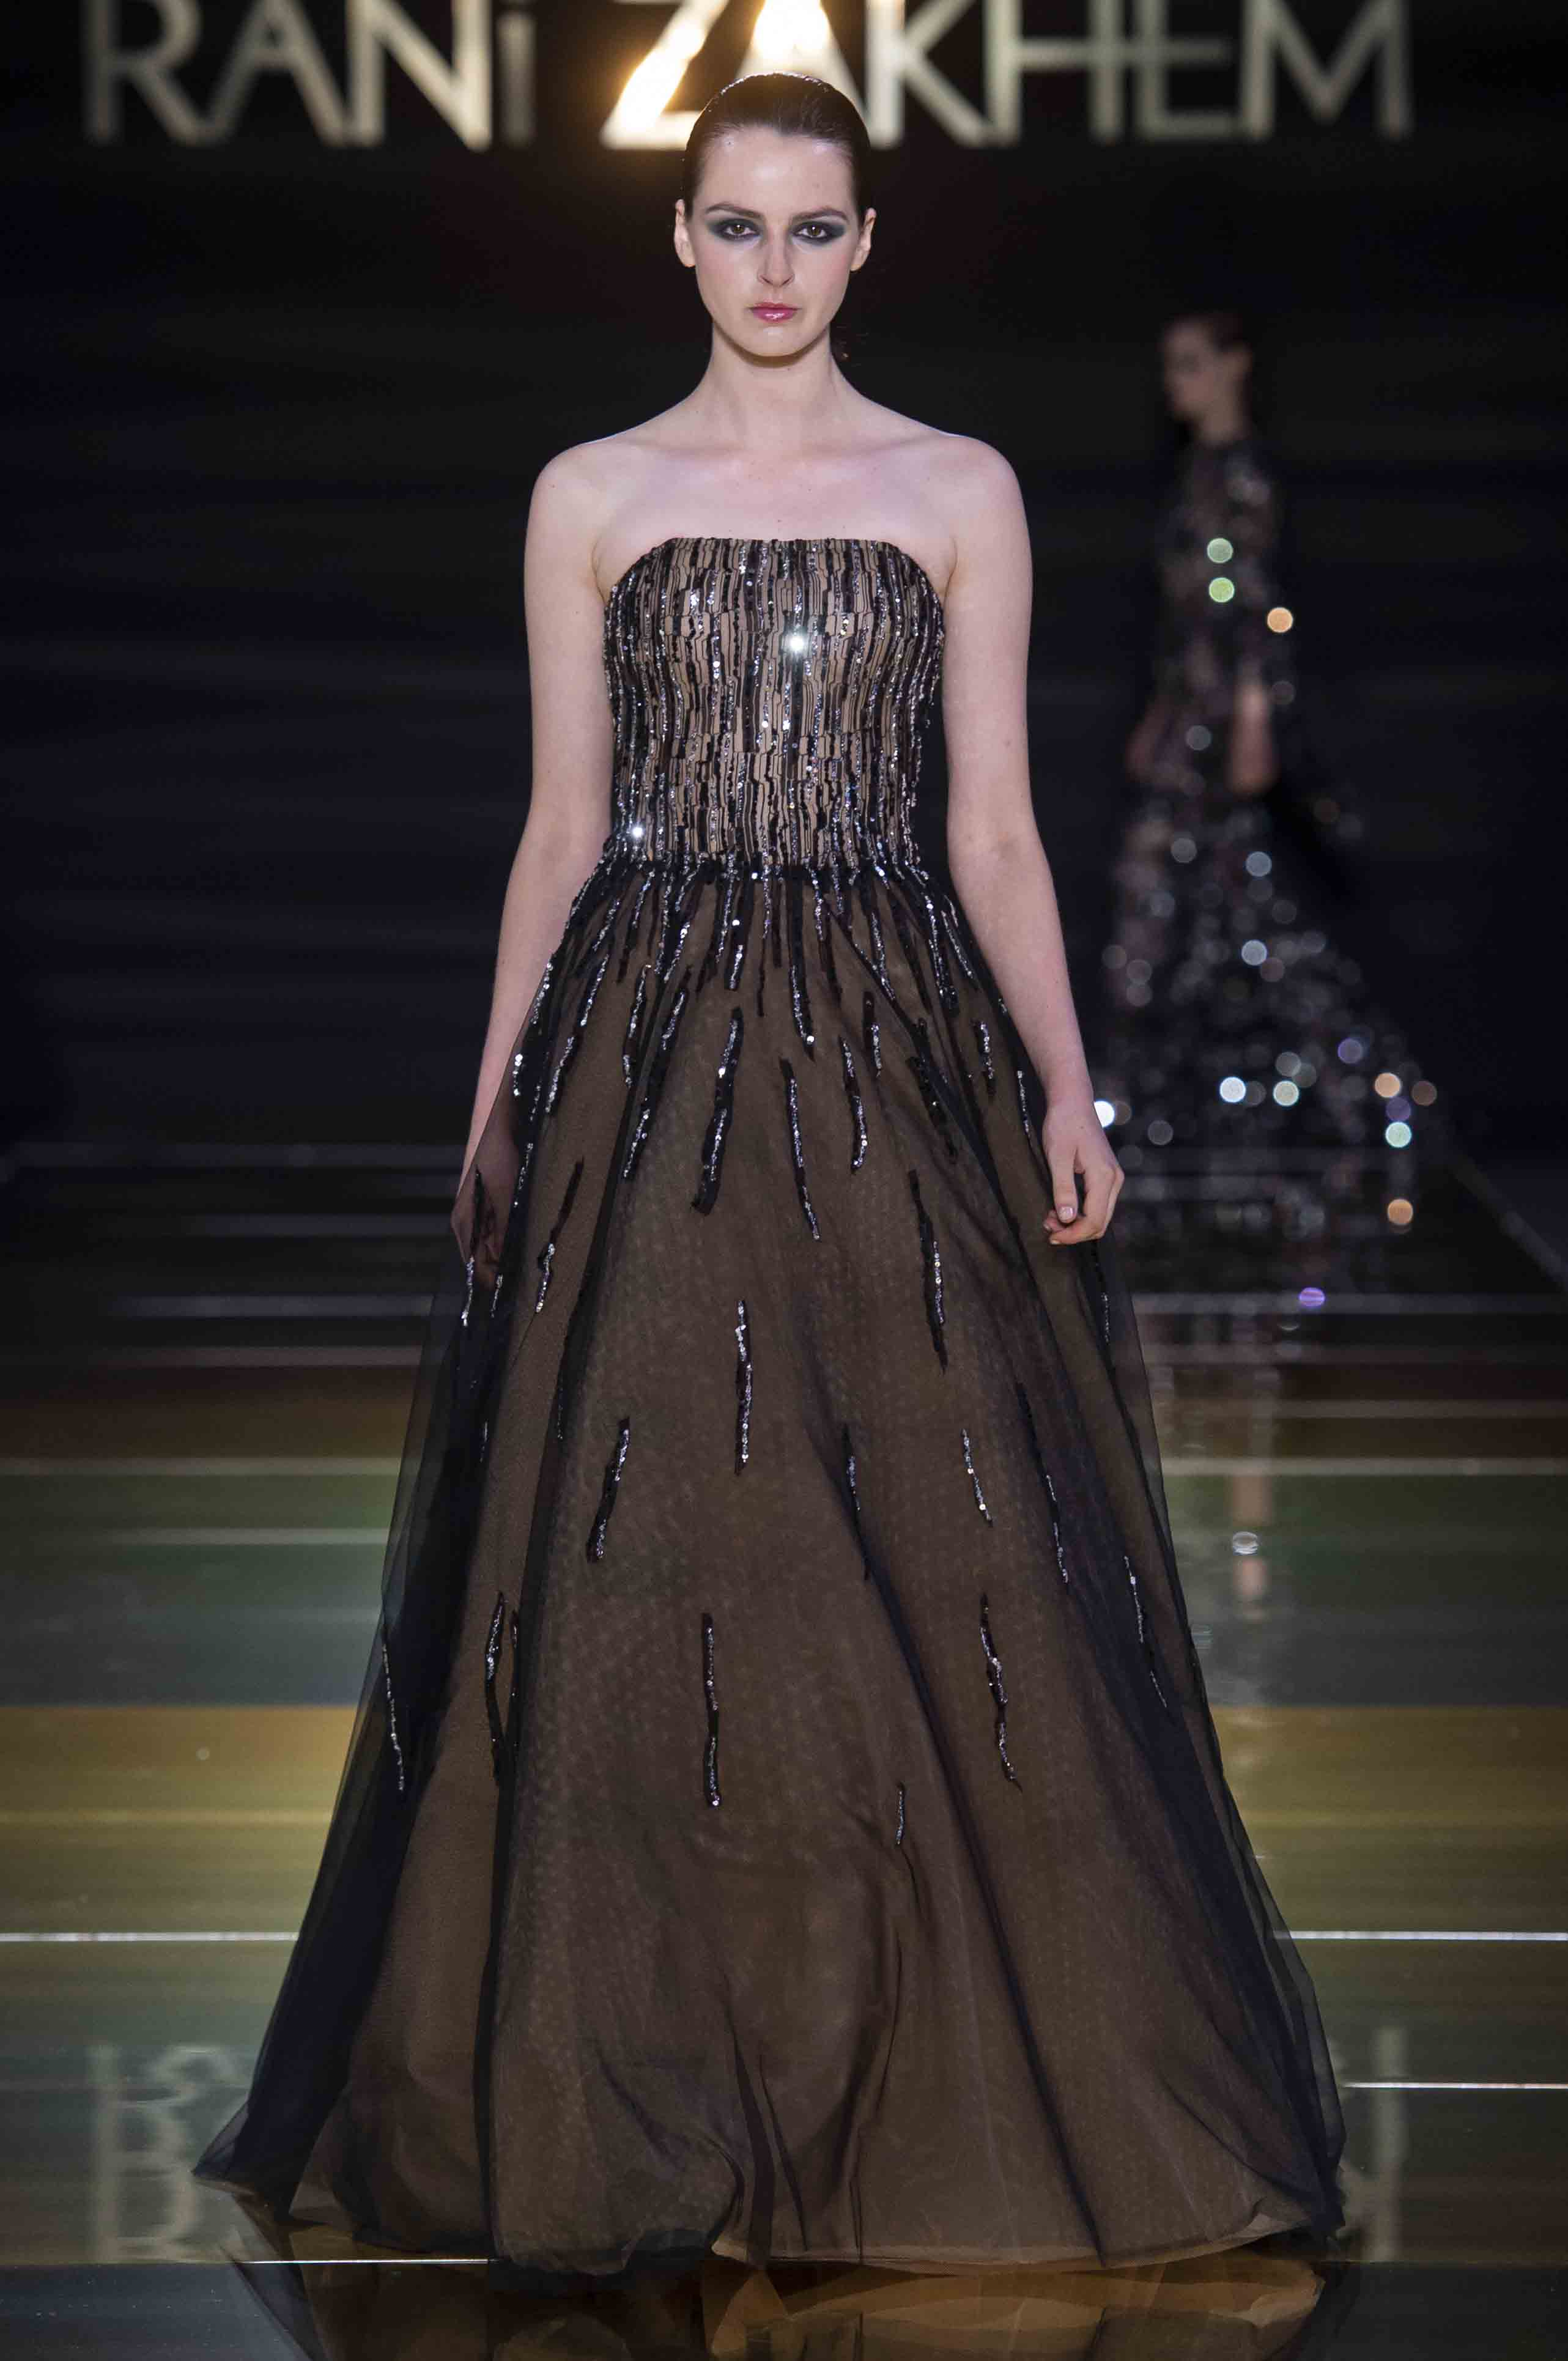 Rani zakhem couture collection automne hiver fall winter 2018 2019 pfw © imaxtree (27)